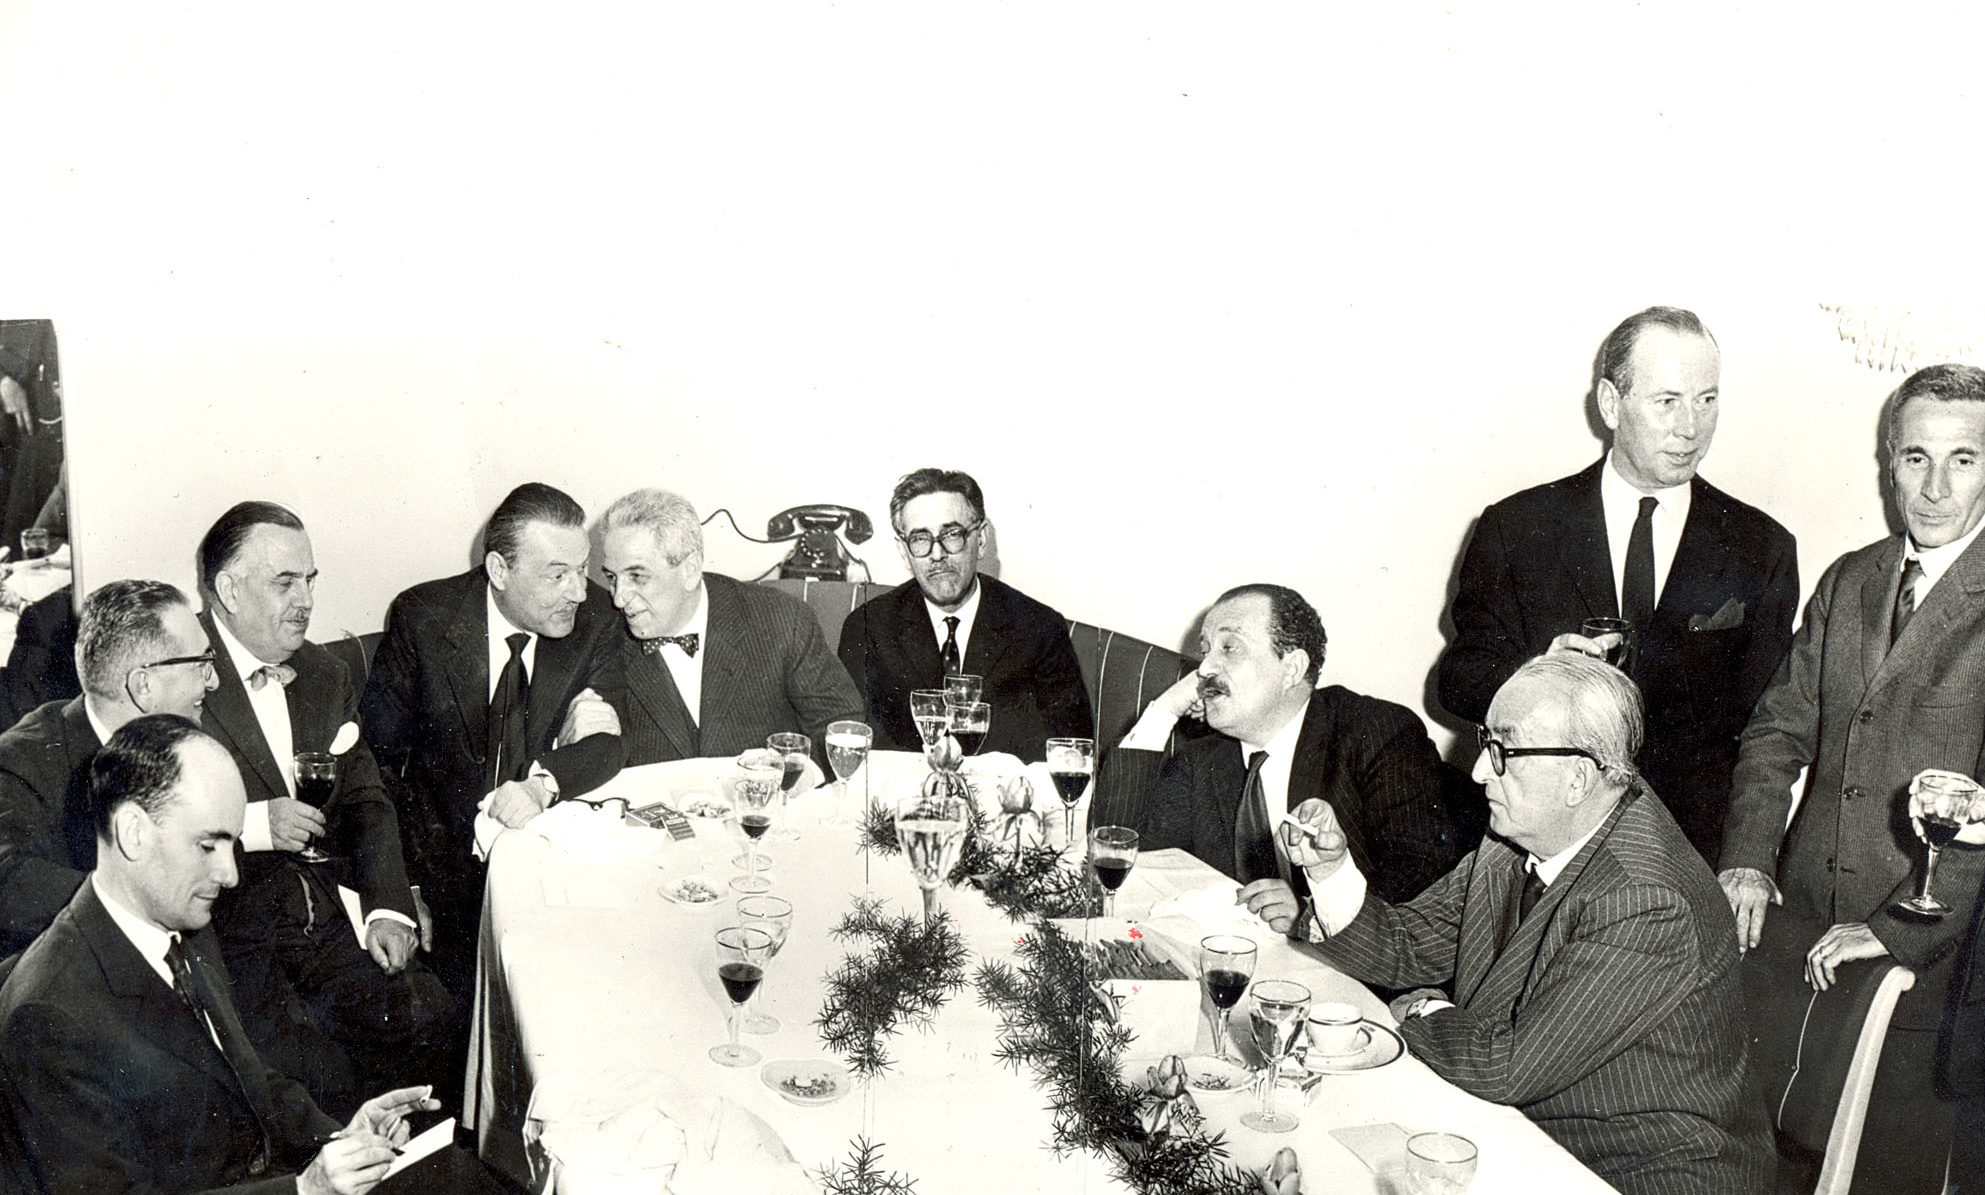 Mario Pavesi at Savini Restaurant in Milan together with various exponents of the world of the arts and culture in the Sixties